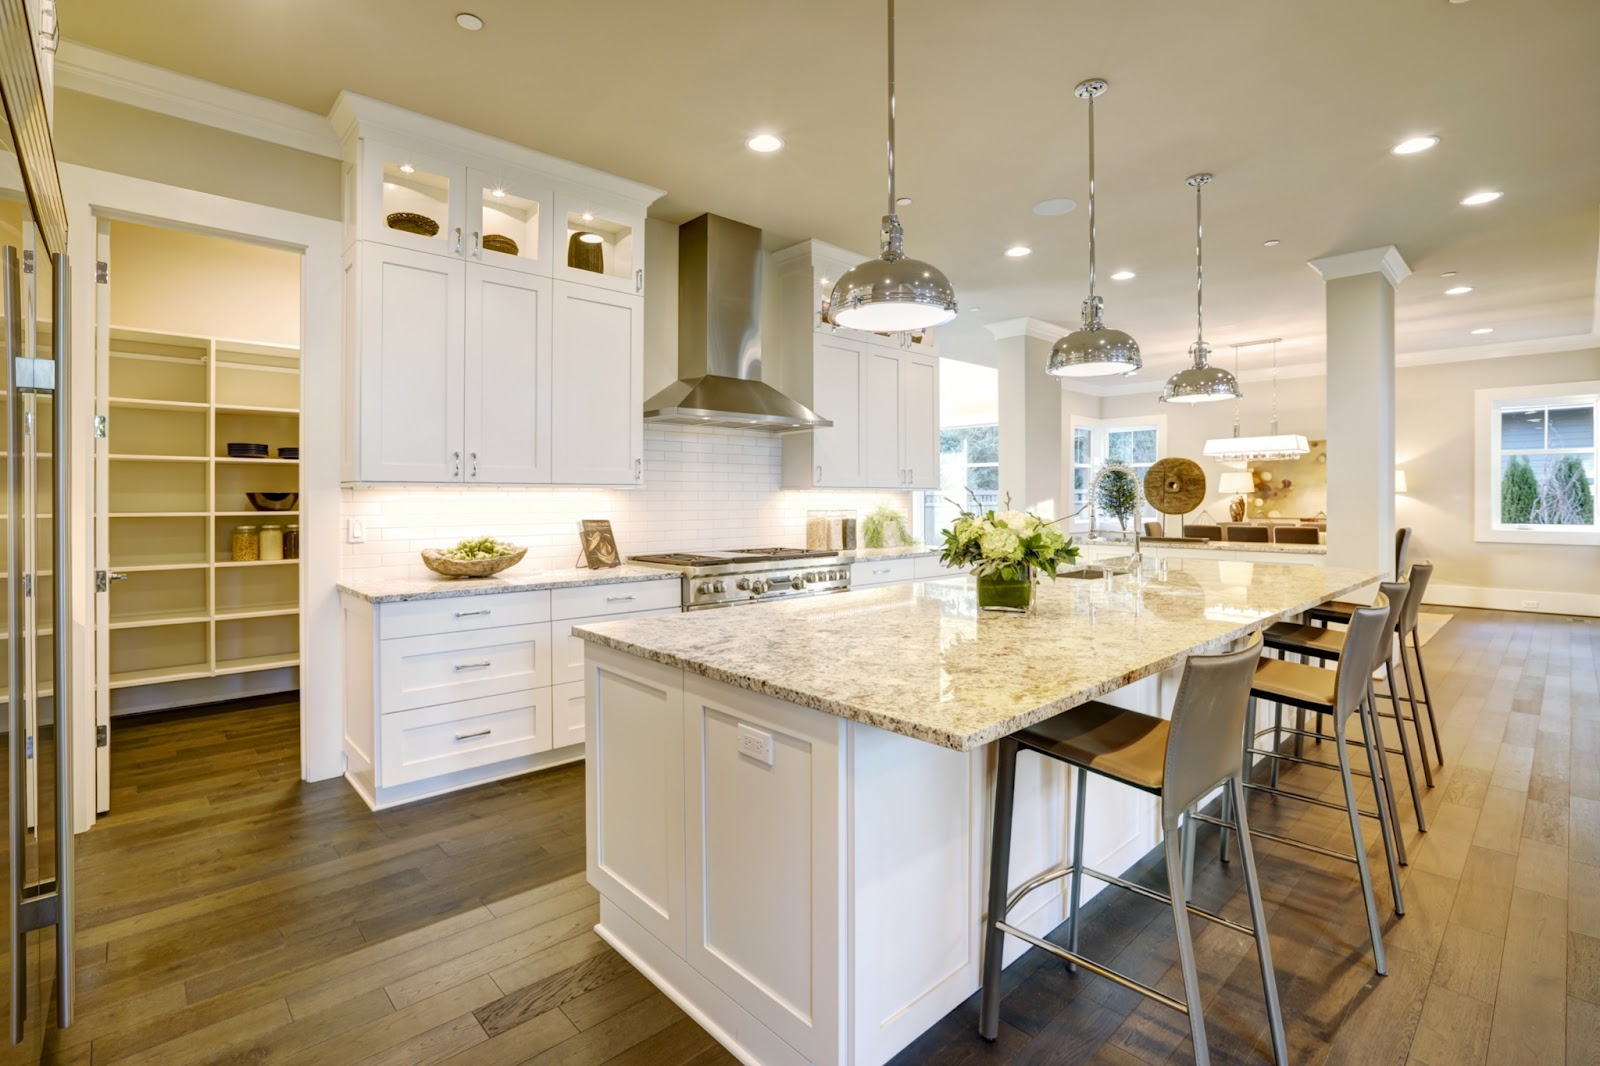 Transitional white kitchen featuring a walk-in pantry behind the stove wall. Kitchen features white shaker cabinets and quartz countertops, large stainless pendants and appliances and wide plank wood floors.